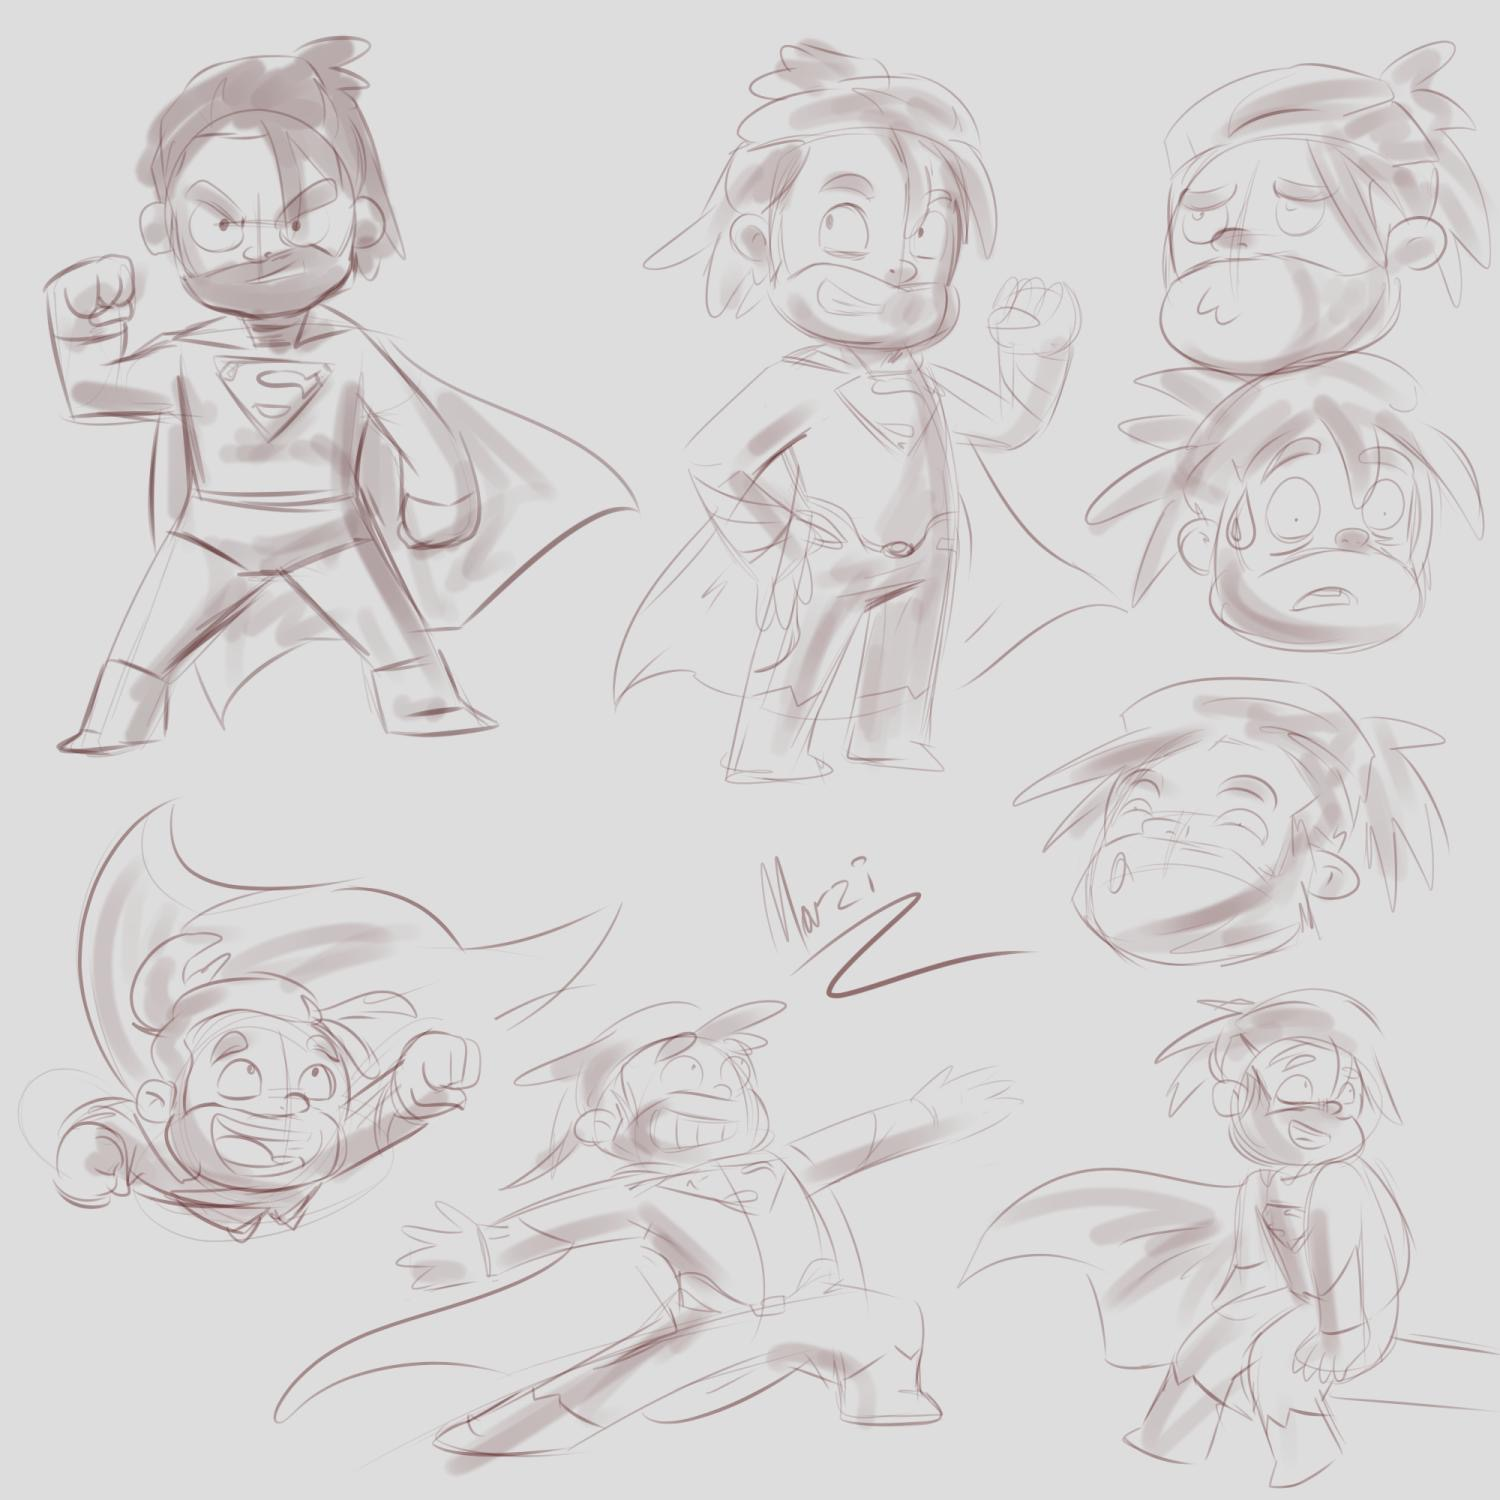 poses from the middle idea.